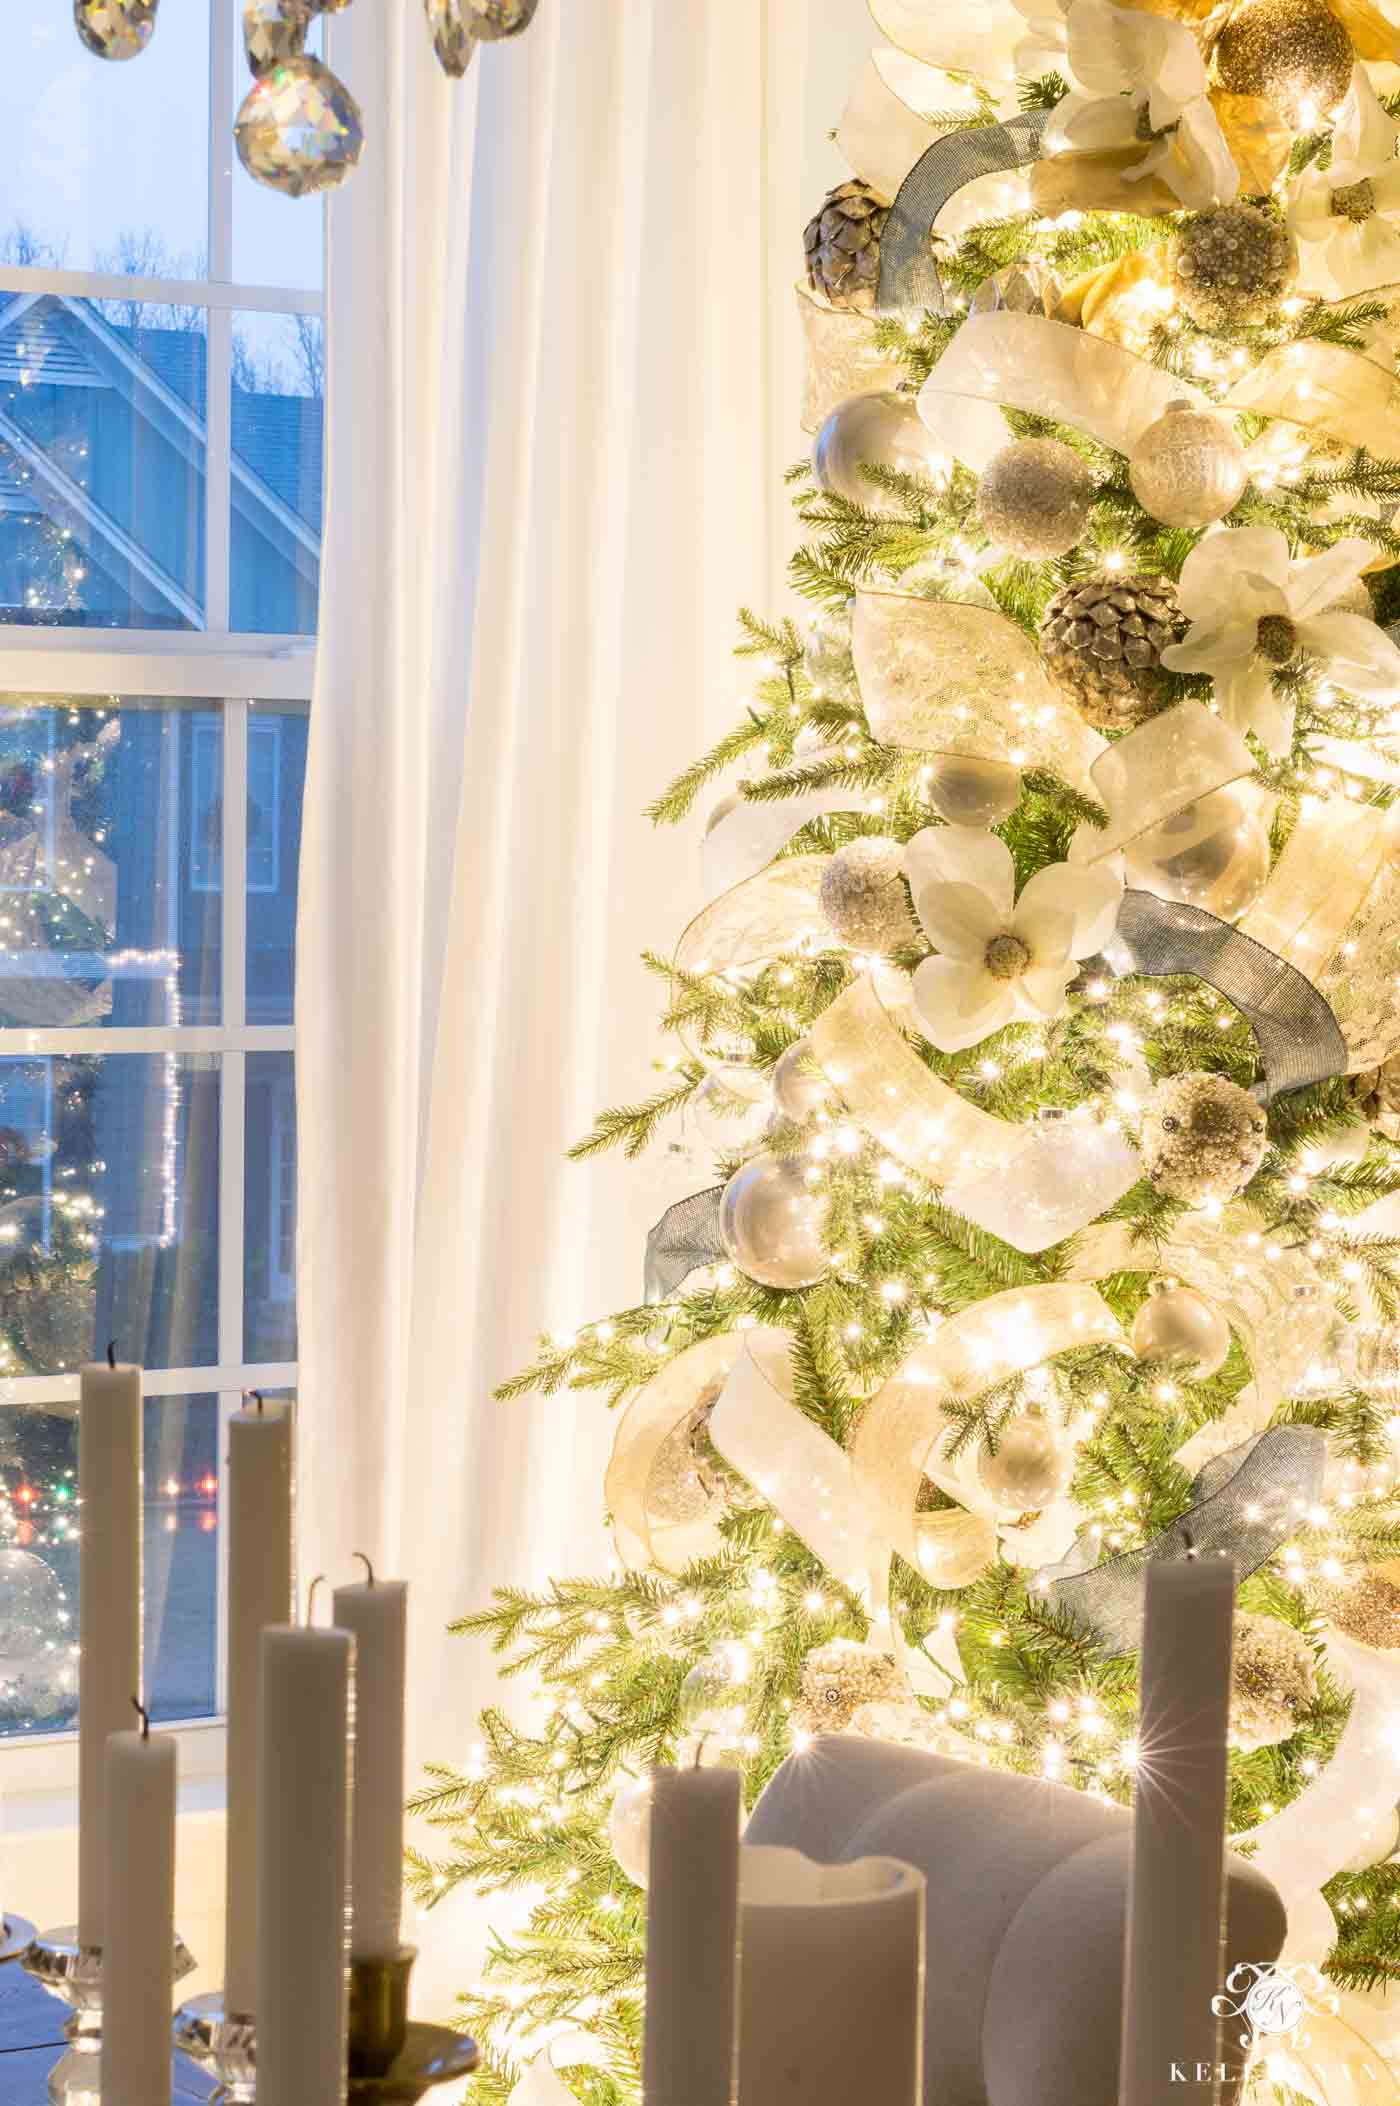 How to make your Christmas tree lights extra bright and glow-y!